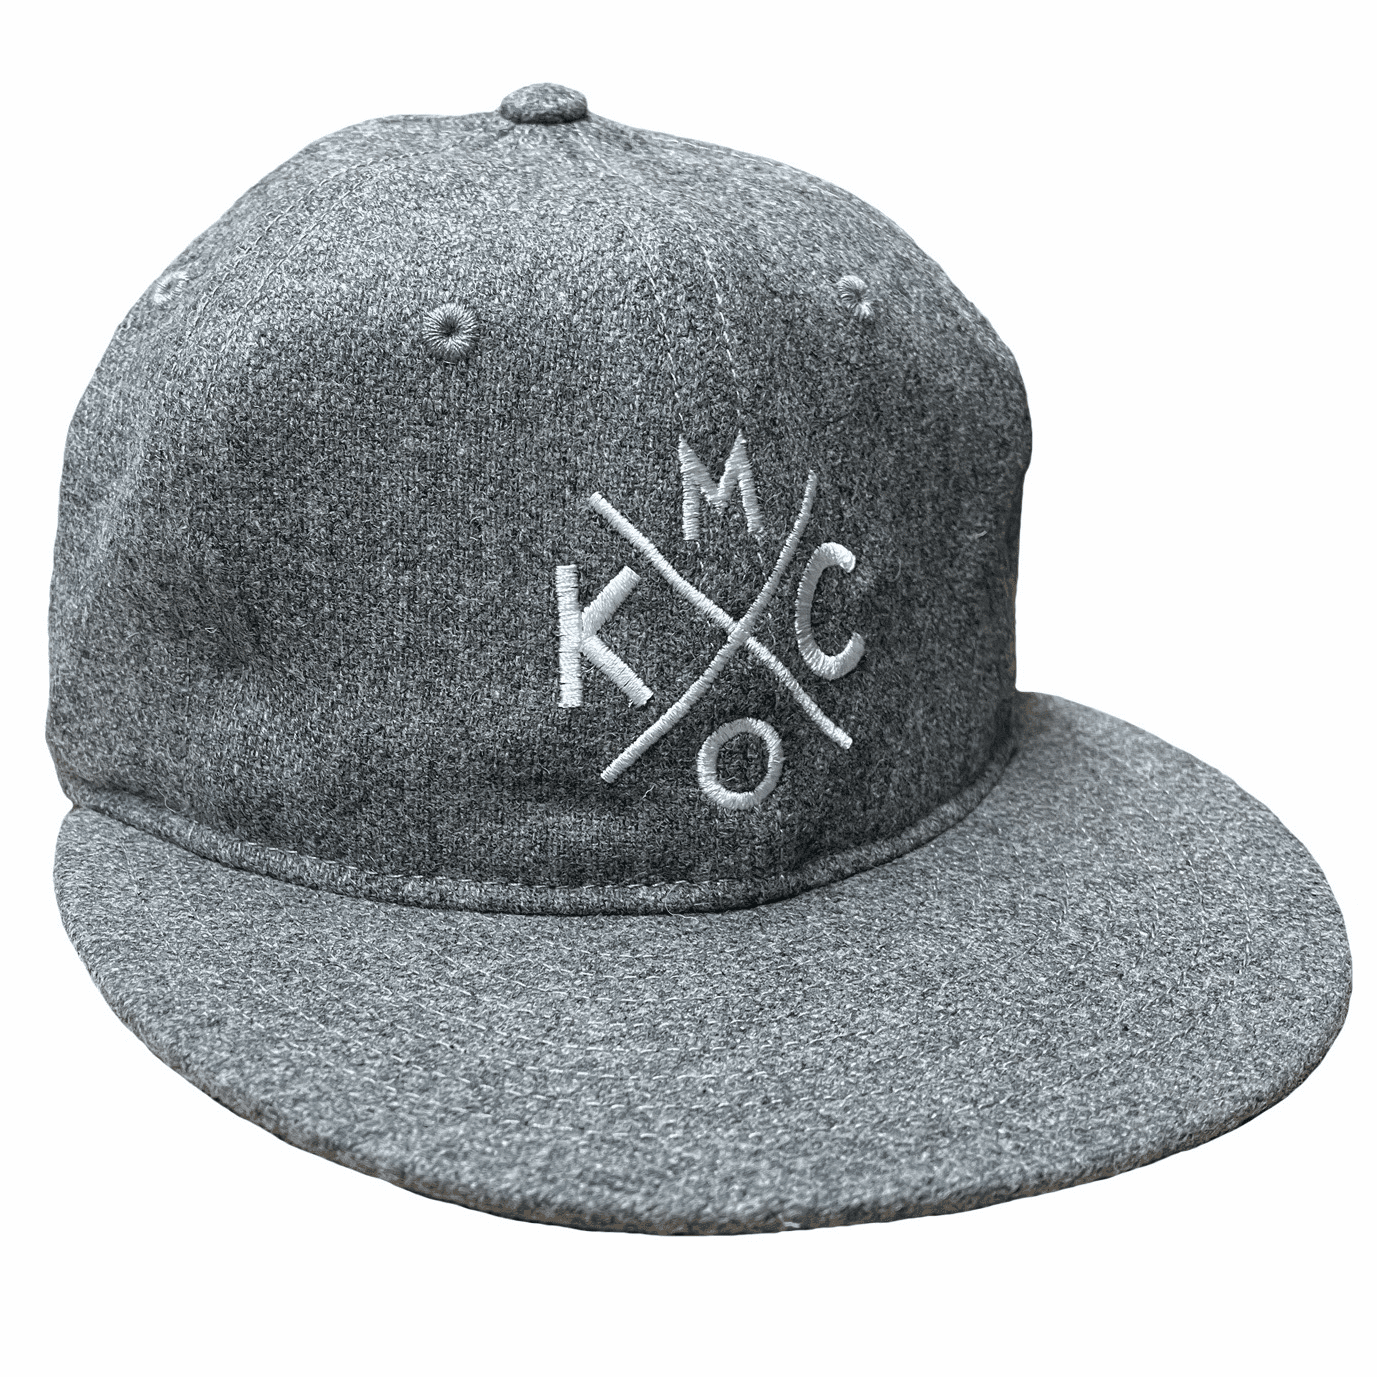 KCMO Wool Flatbill Hat<br>Heather Grey